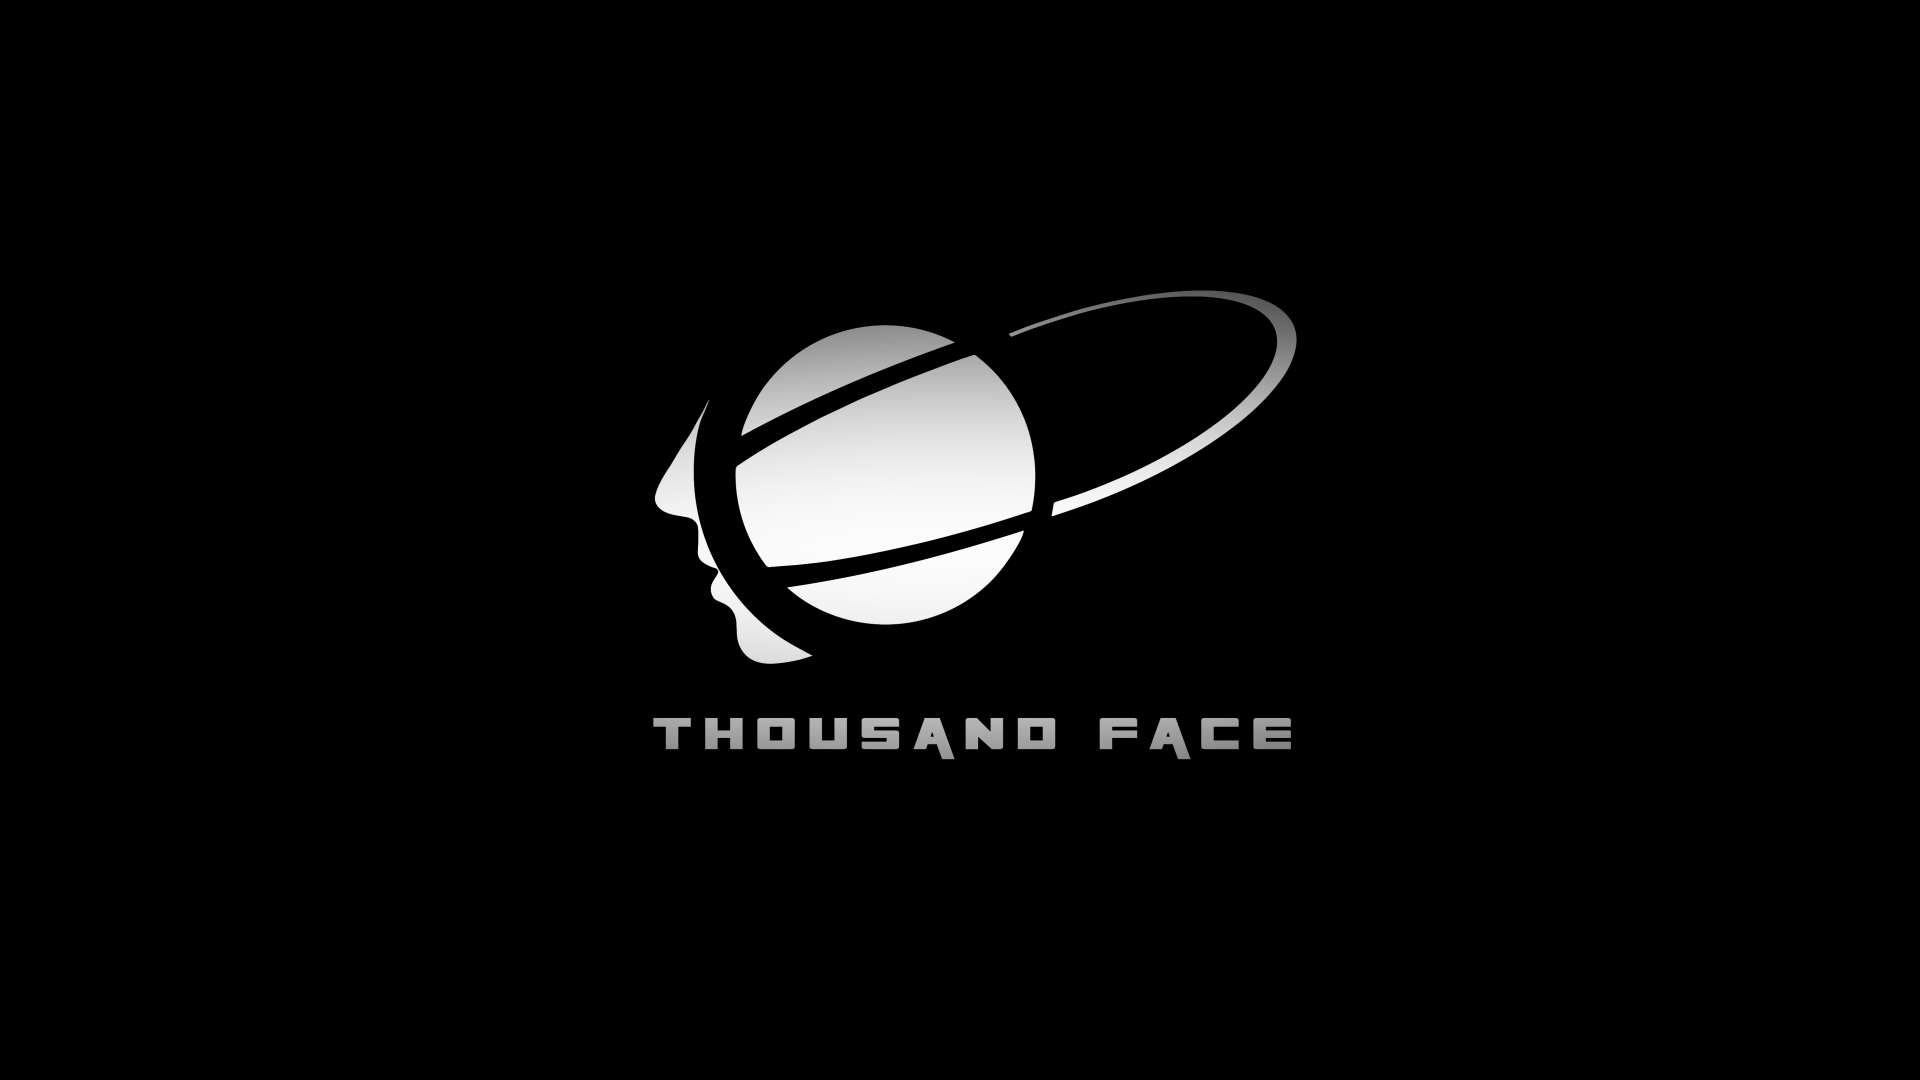 Thousand Face